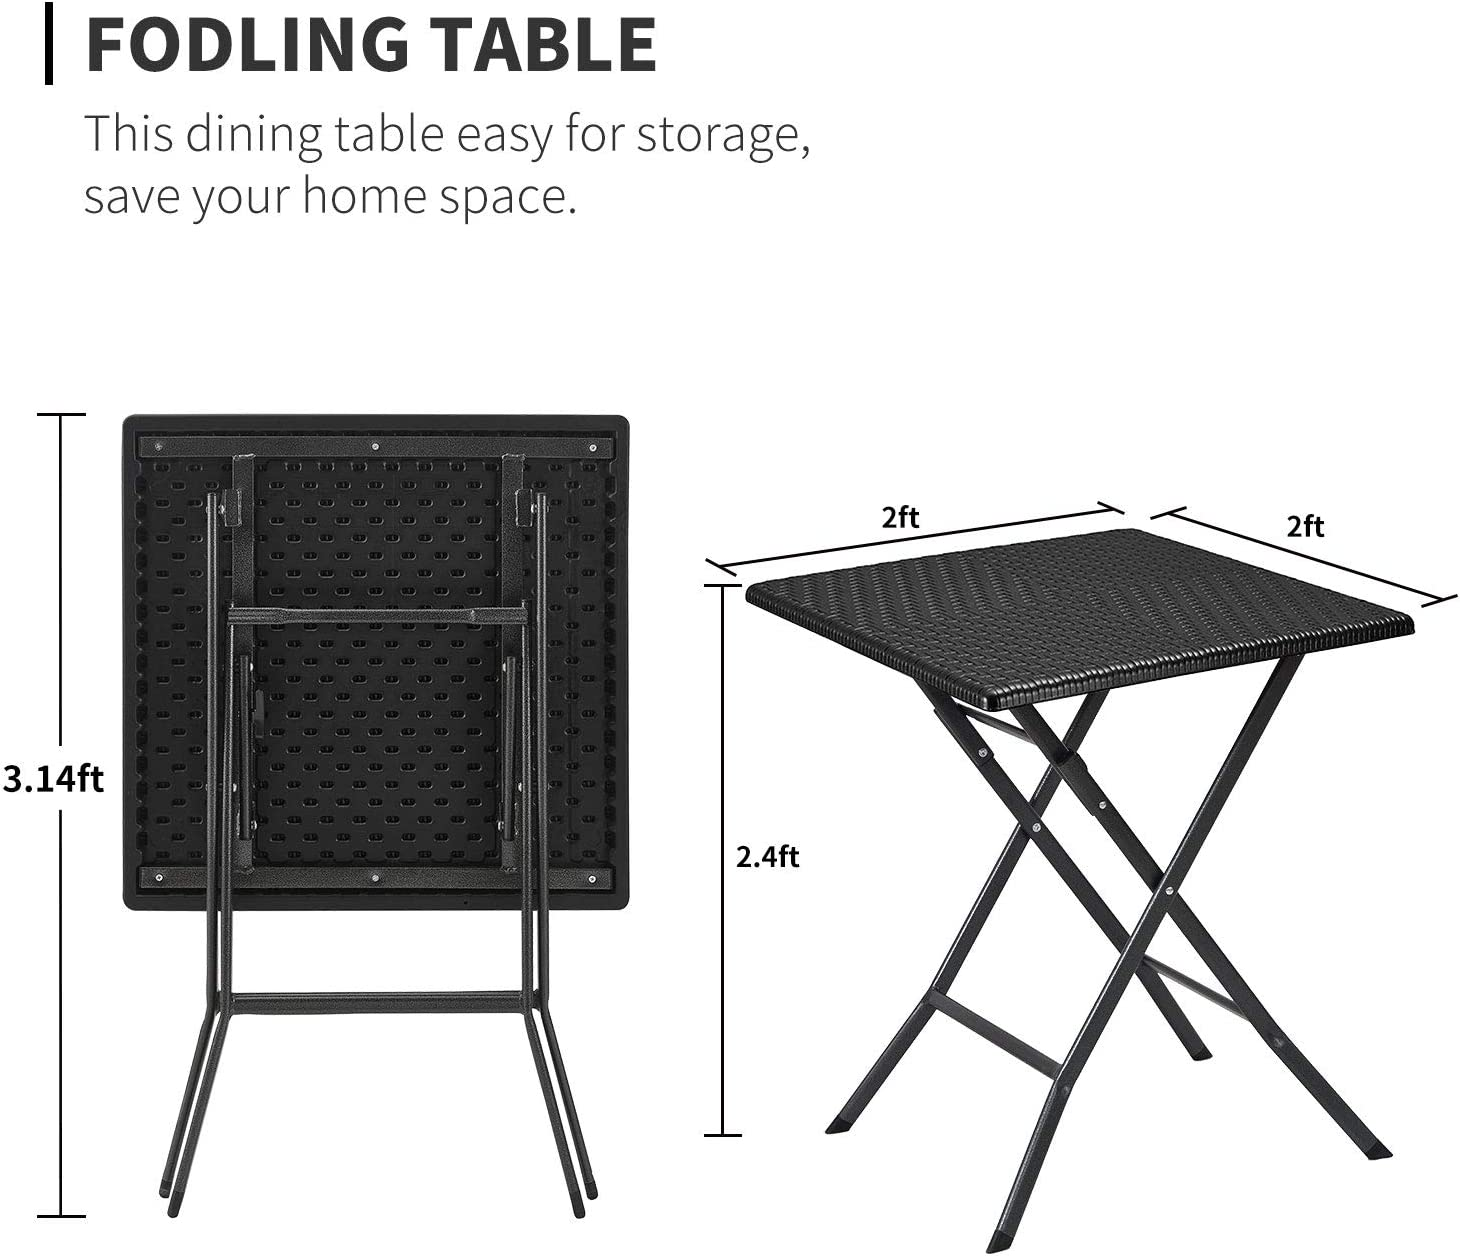 Home Office Desk Aneken Folding Table 4ft Fold-in-Half 17lbs Portable Picnic Table Outdoor Indoor with Carrying Handle Plastic Faux Rattan Black Foldable Table for Camping Dining Party Game Card